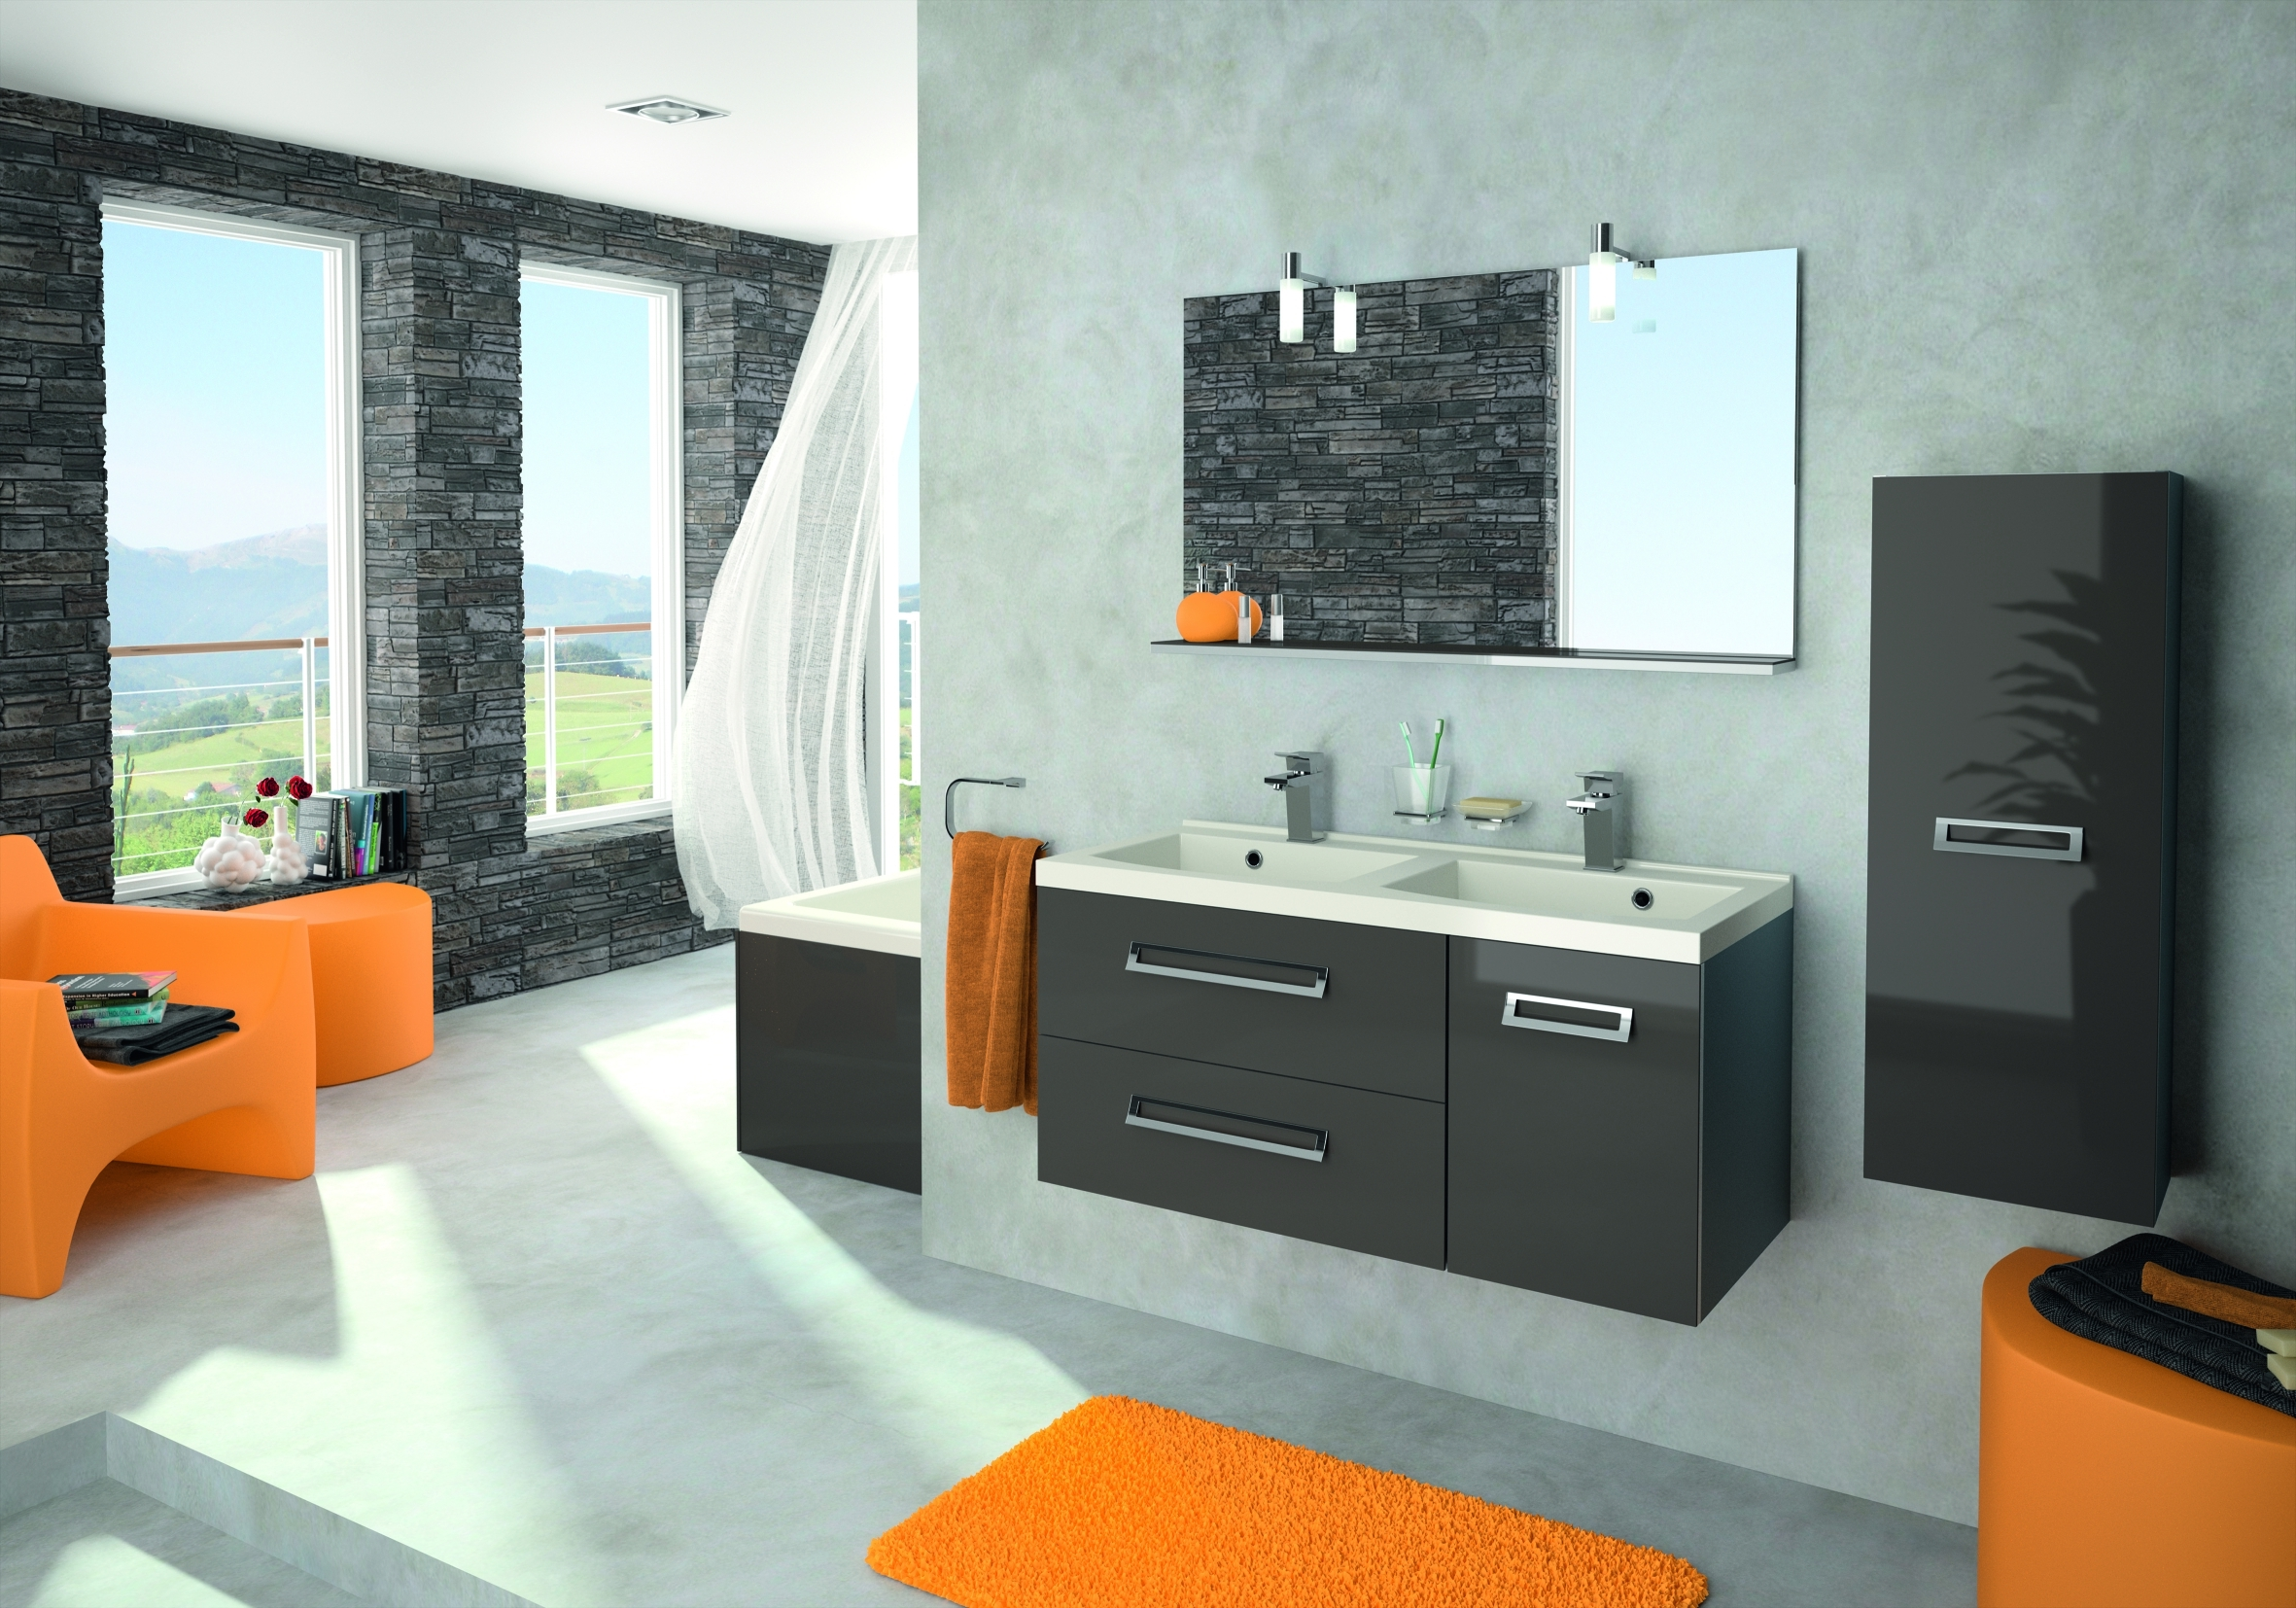 d co salle de bain gris et aubergine exemples d 39 am nagements. Black Bedroom Furniture Sets. Home Design Ideas